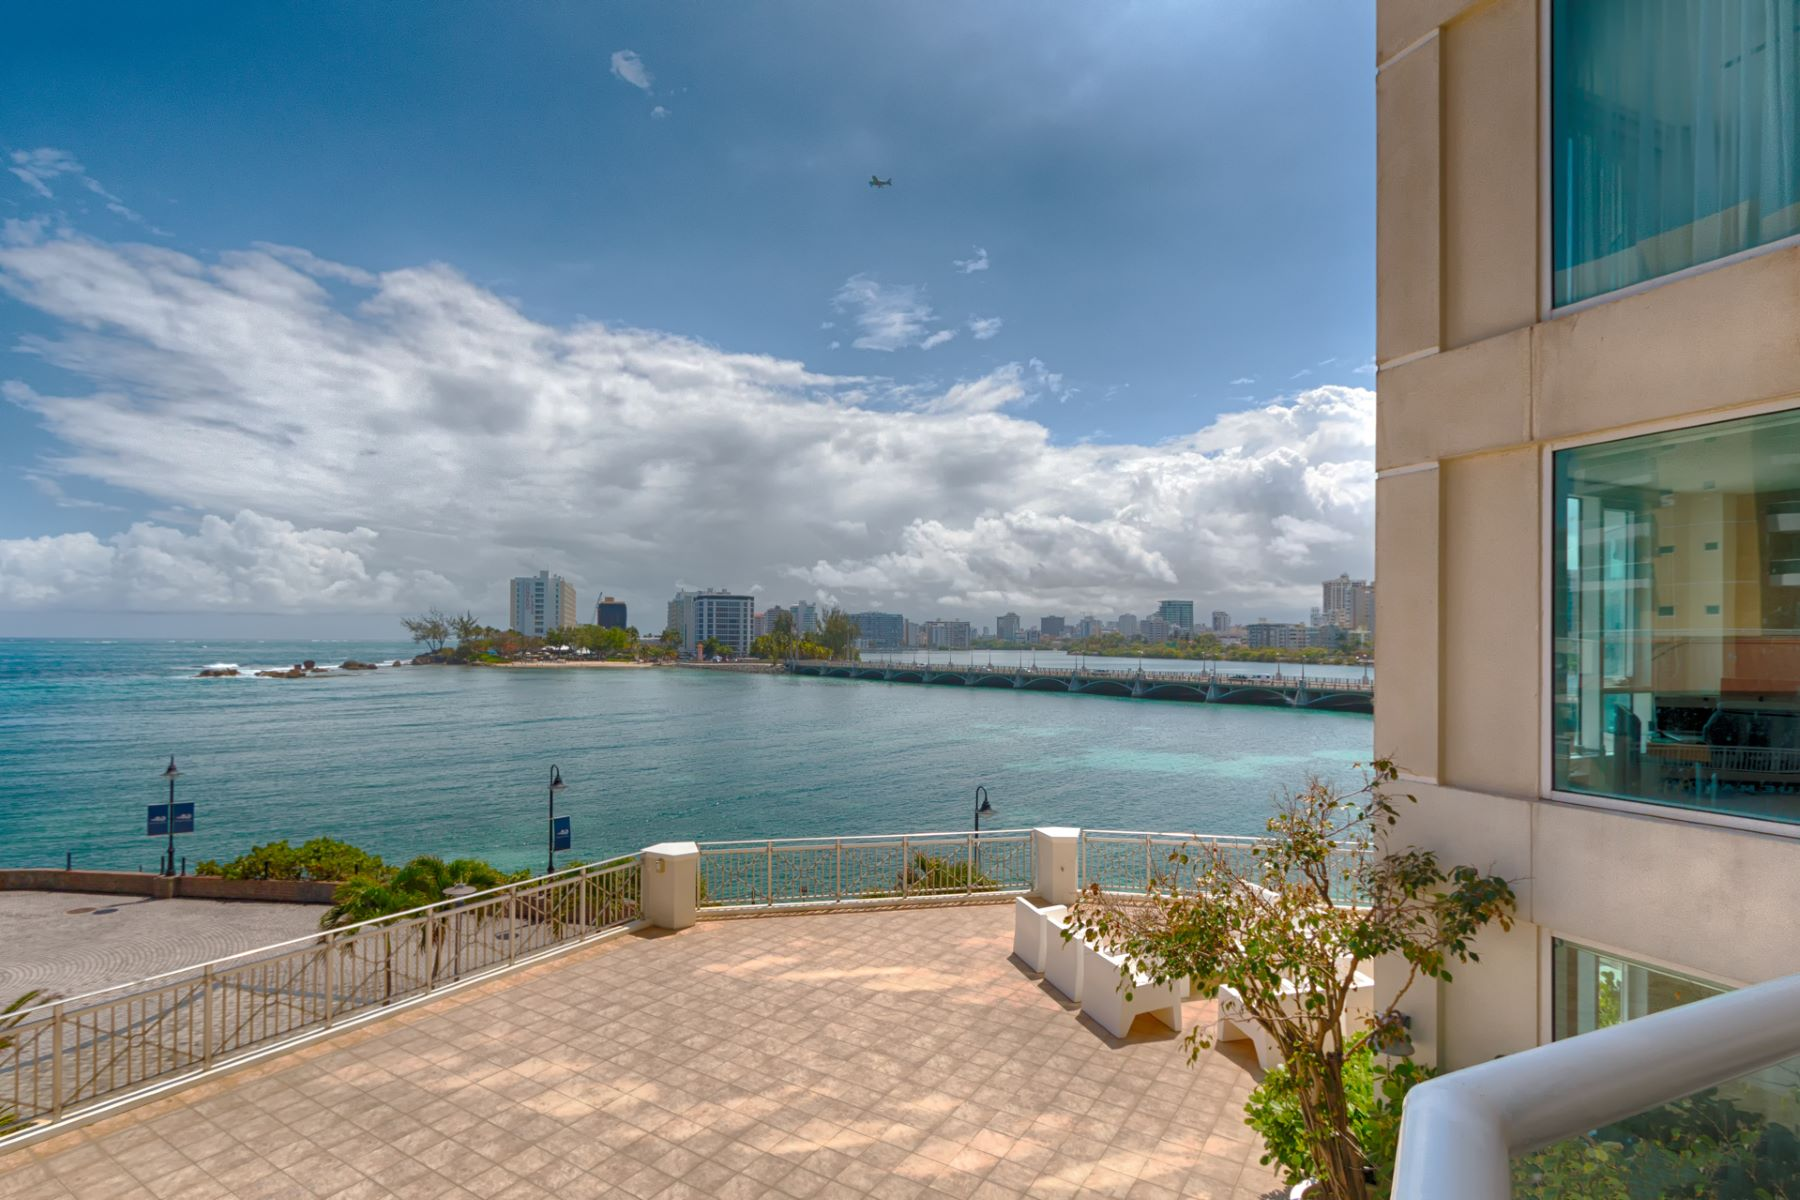 Additional photo for property listing at Laguna Plaza Waterfront 6 Muñoz Rivera Avenue, Apt 303 Laguna Plaza San Juan, Puerto Rico 00902 Puerto Rico